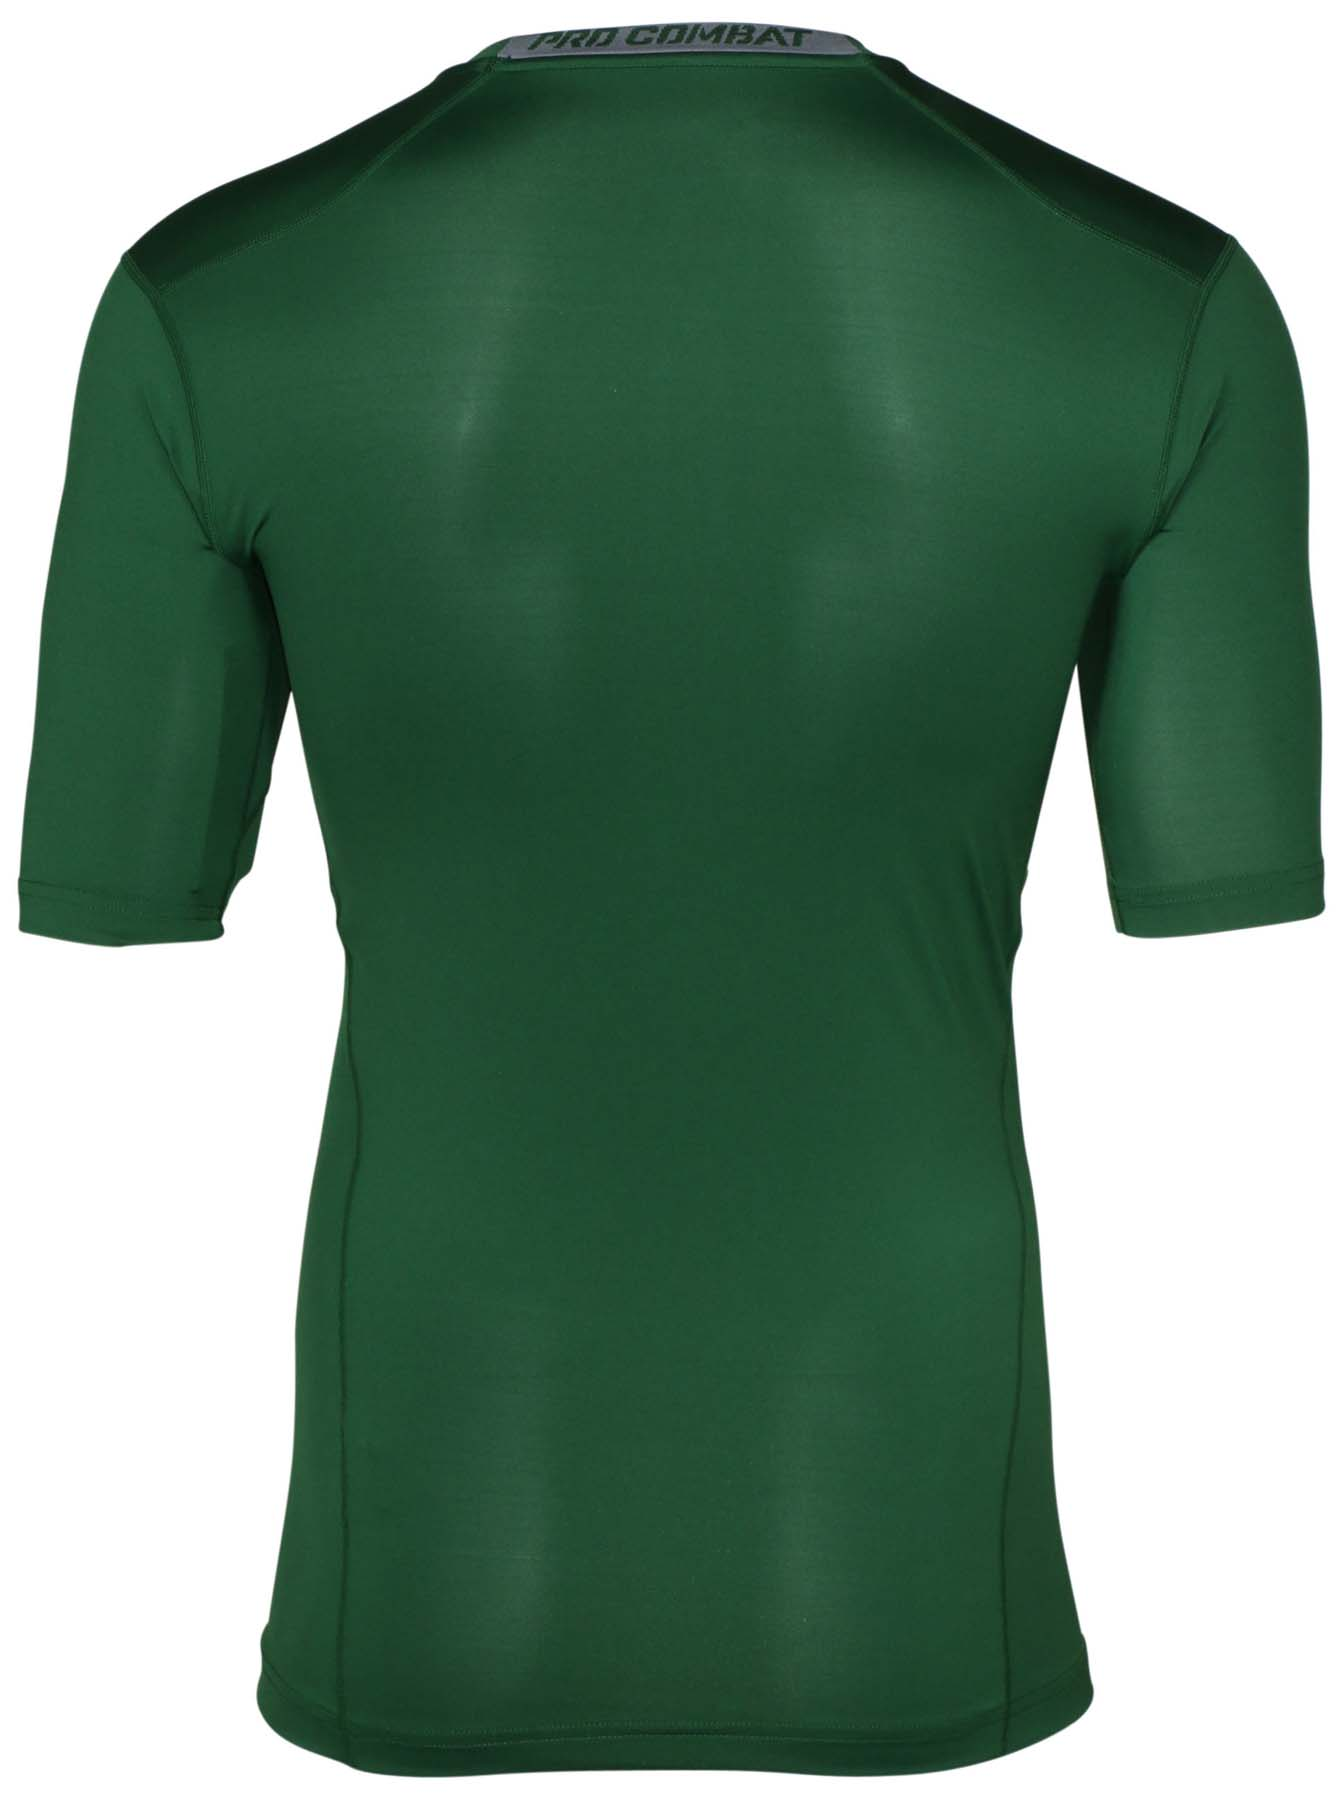 Nike-Men-039-s-Dri-Fit-Core-Compression-Half-Sleeve-Training-Shirt thumbnail 7